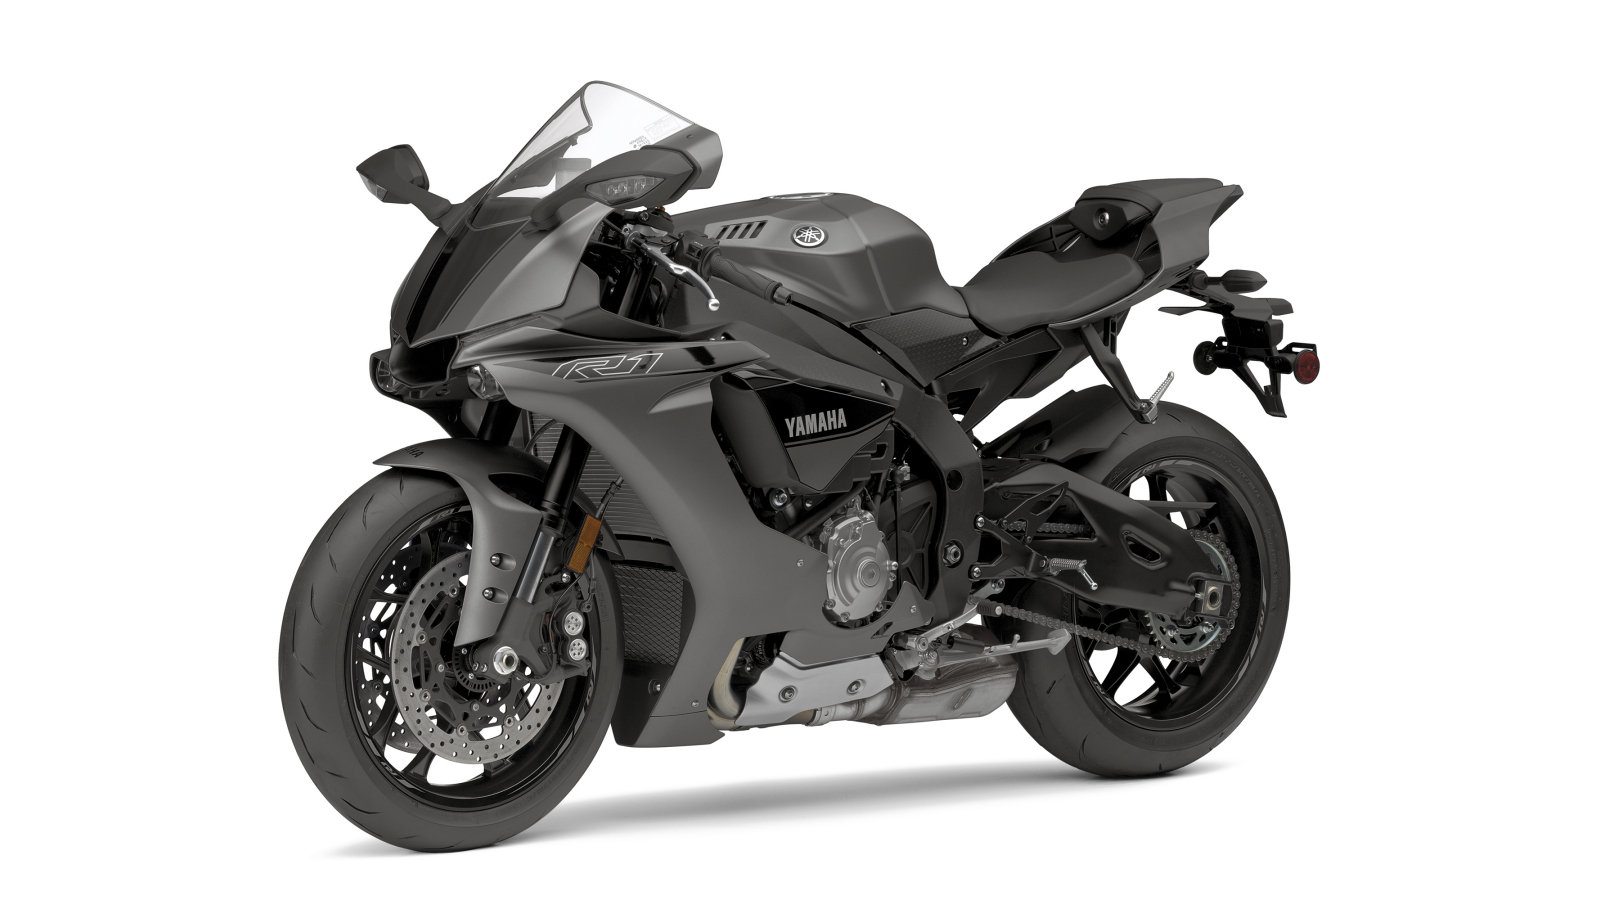 2016 yamaha yzf r1 yzf r1s yzf r1m picture 680871 for Yamaha r1m specs